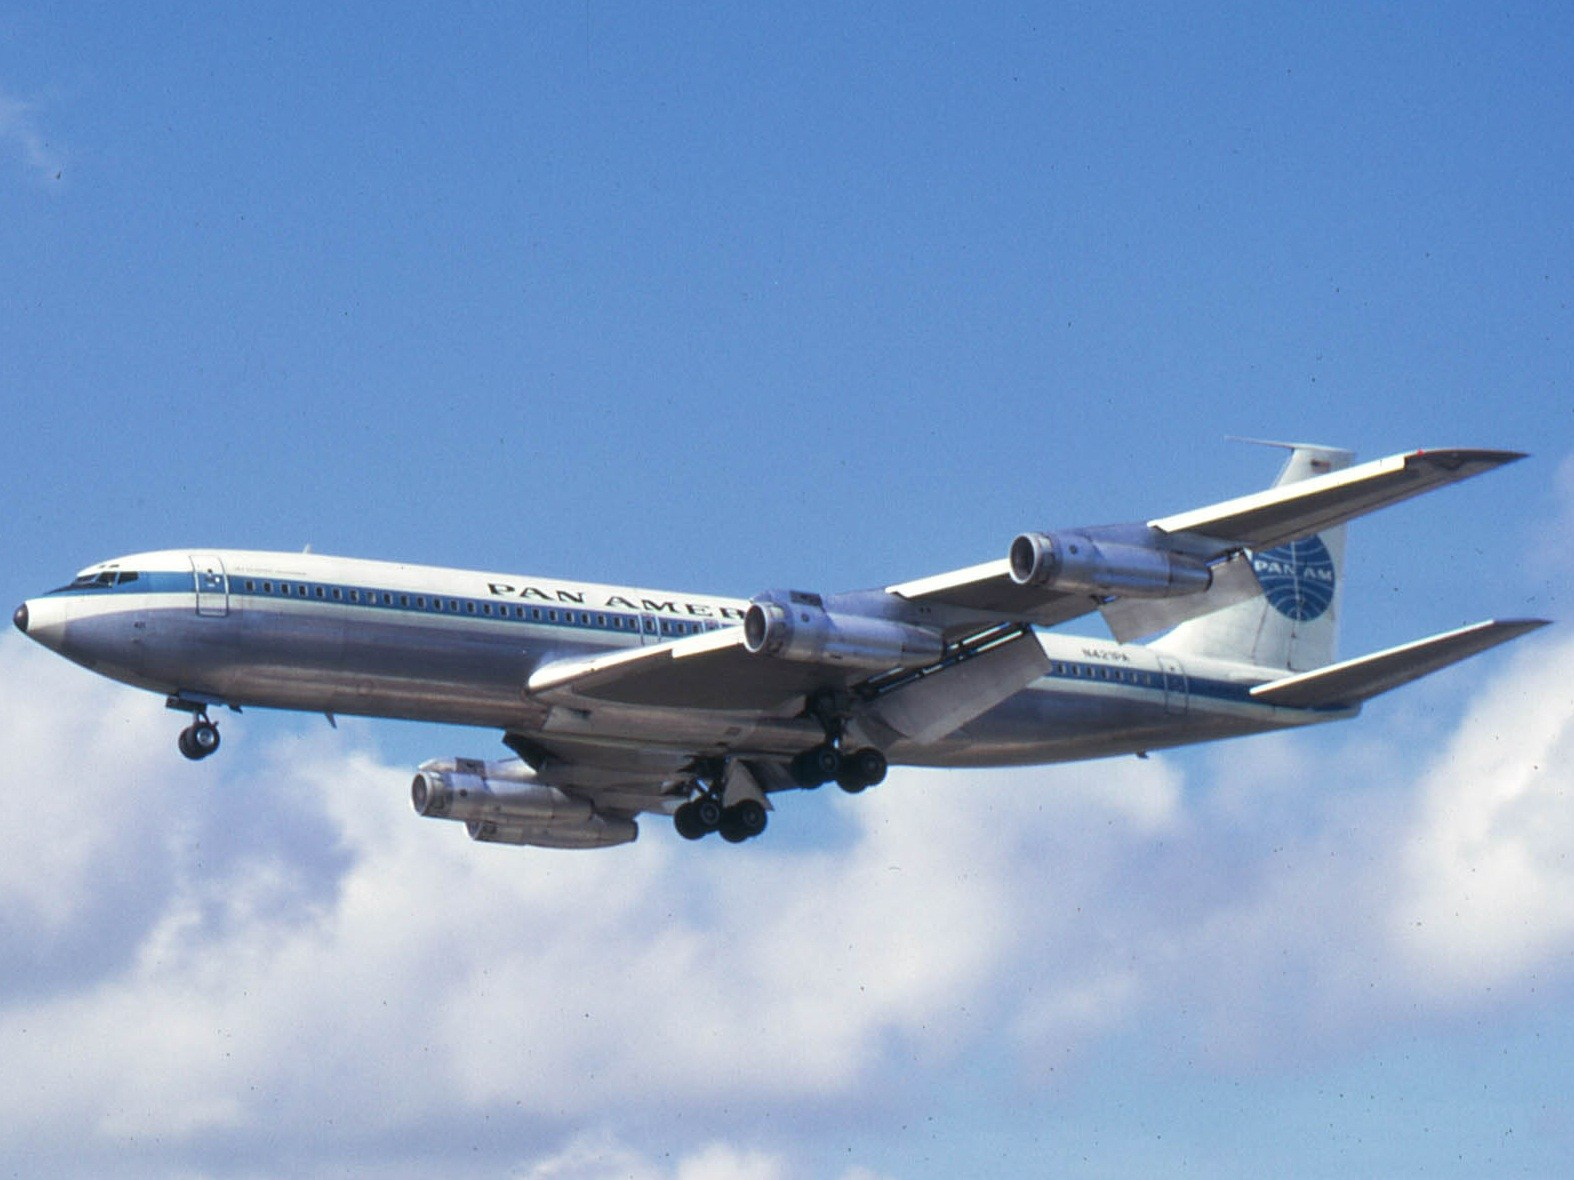 boeing_707-321b_n421pa_pan_american_world_airways_pan_am.jpg